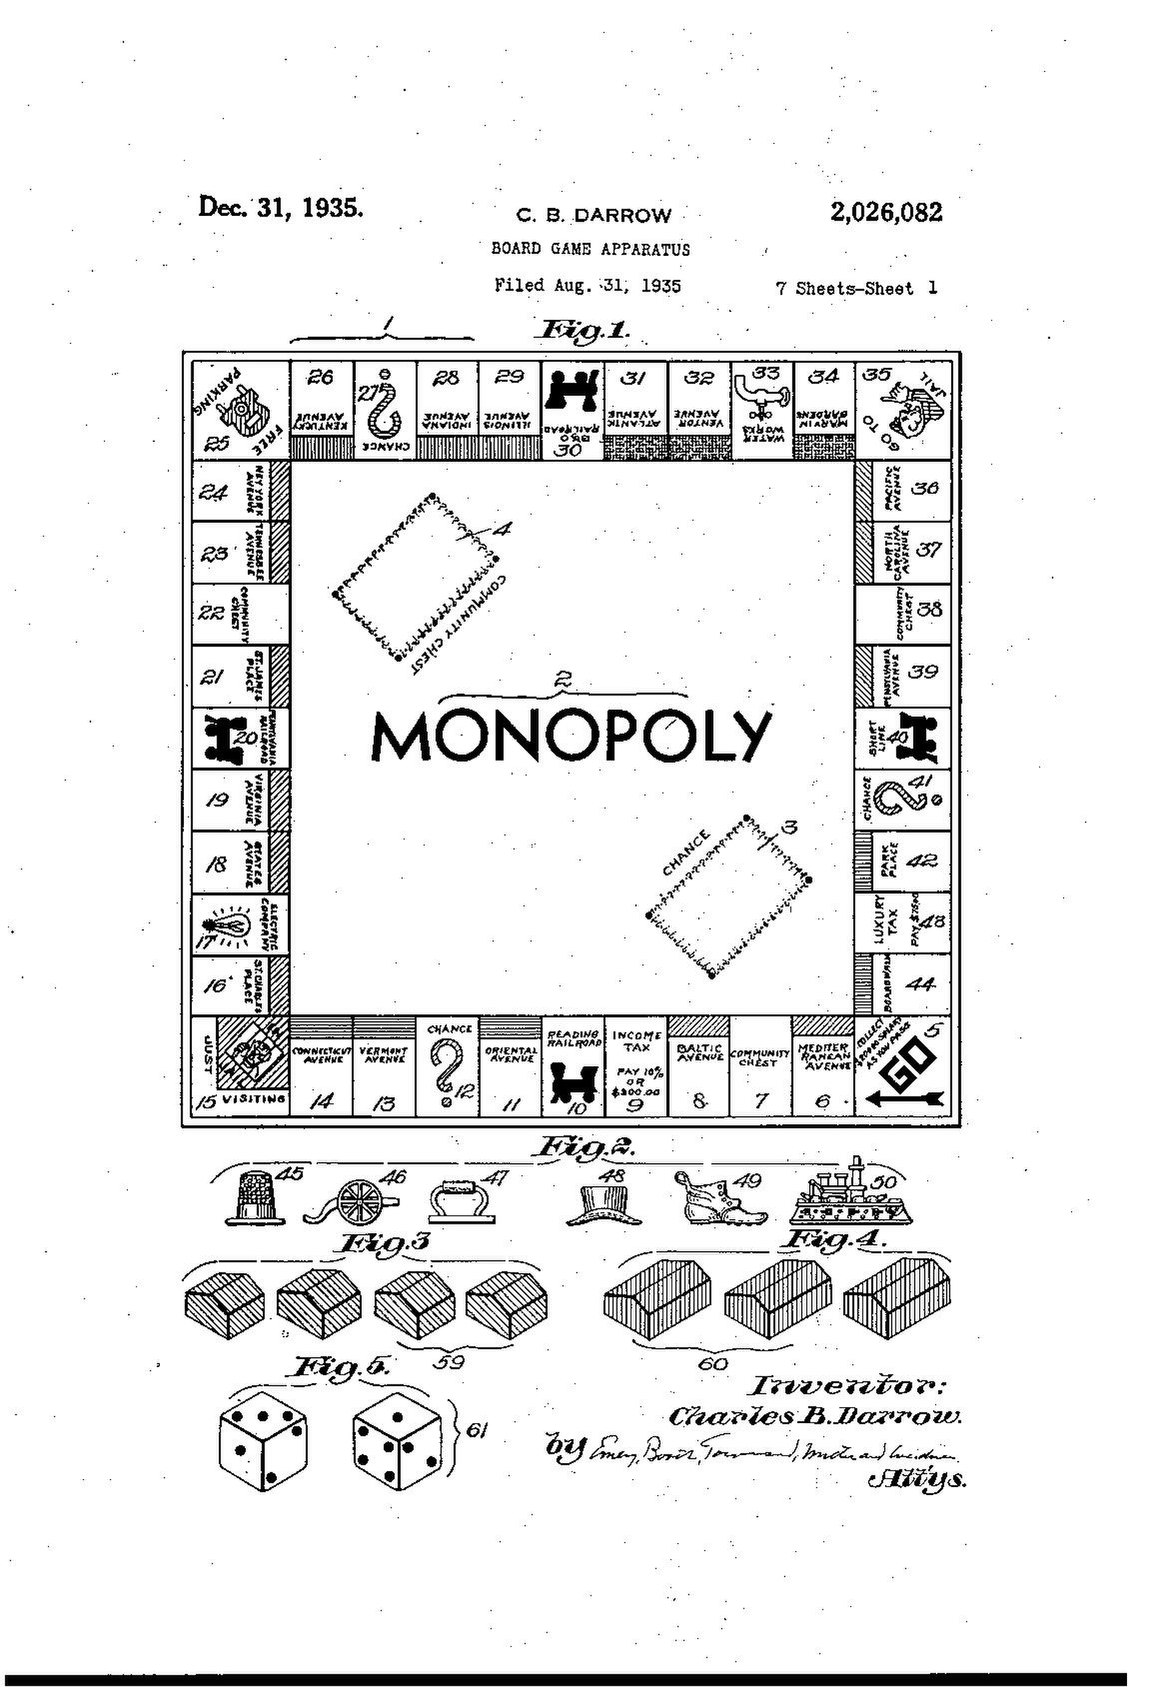 hight resolution of file monopoly board game patent us2026082 pdf